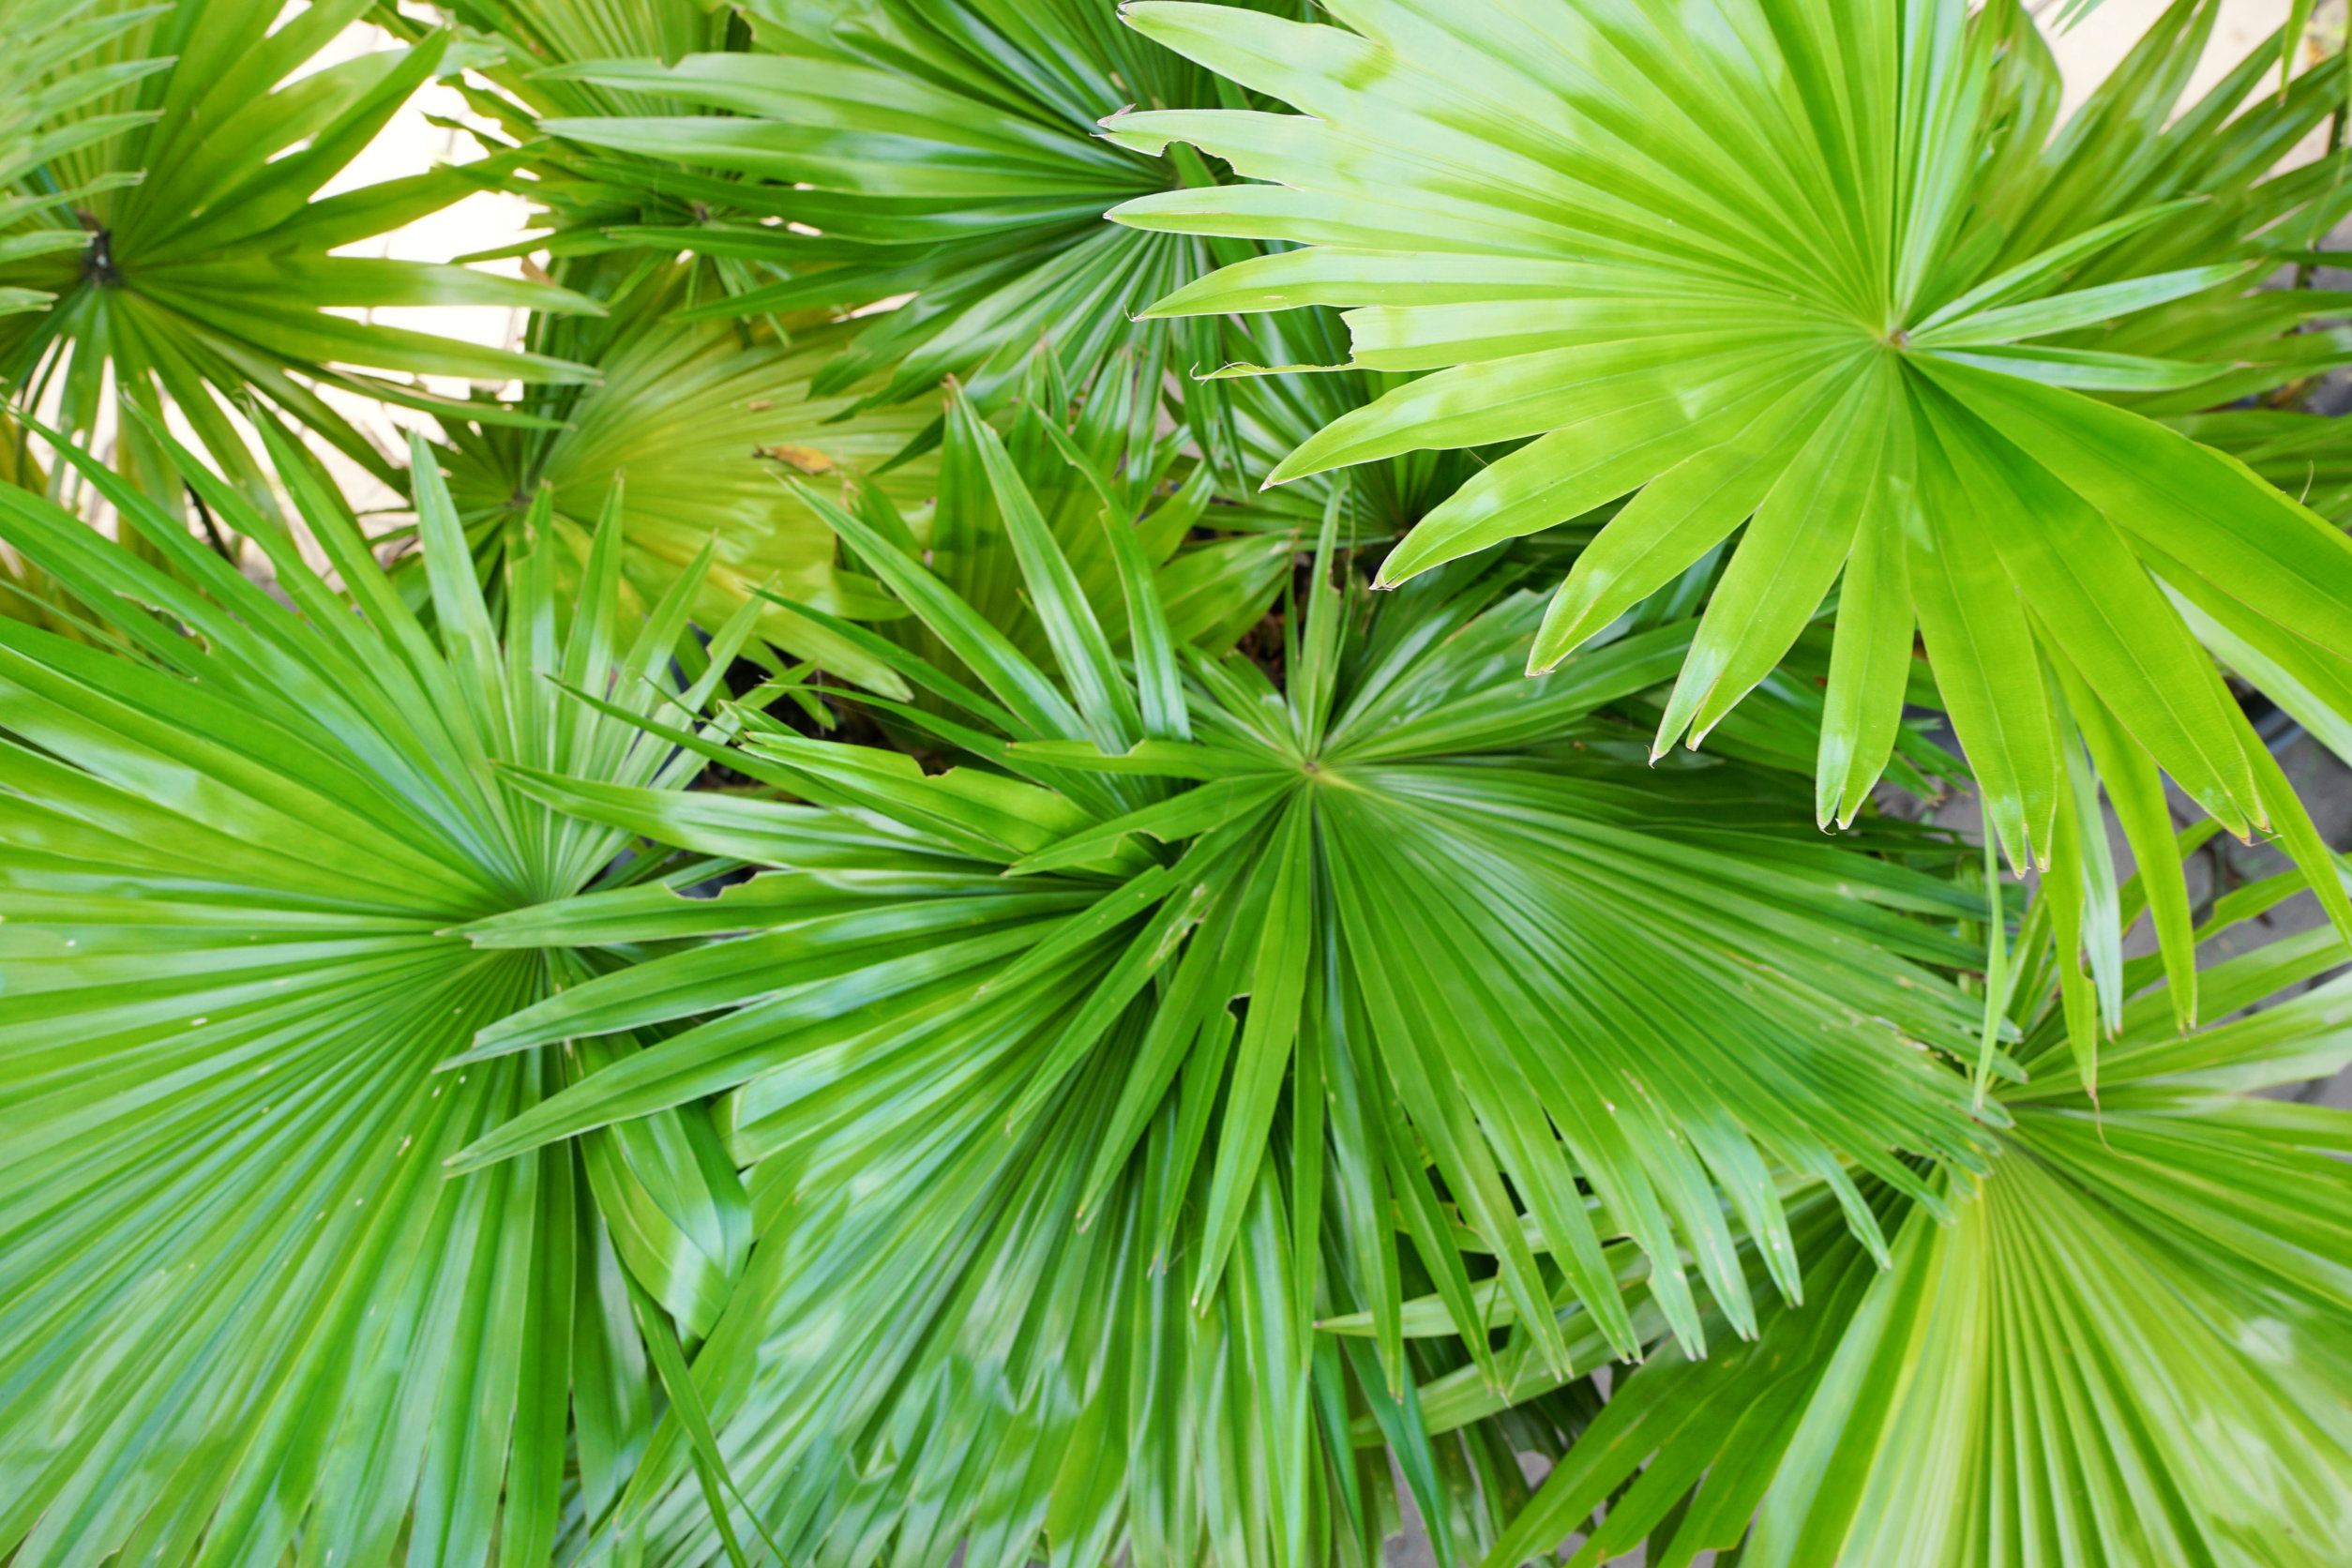 Saw Palmetto: The Masculine Herb